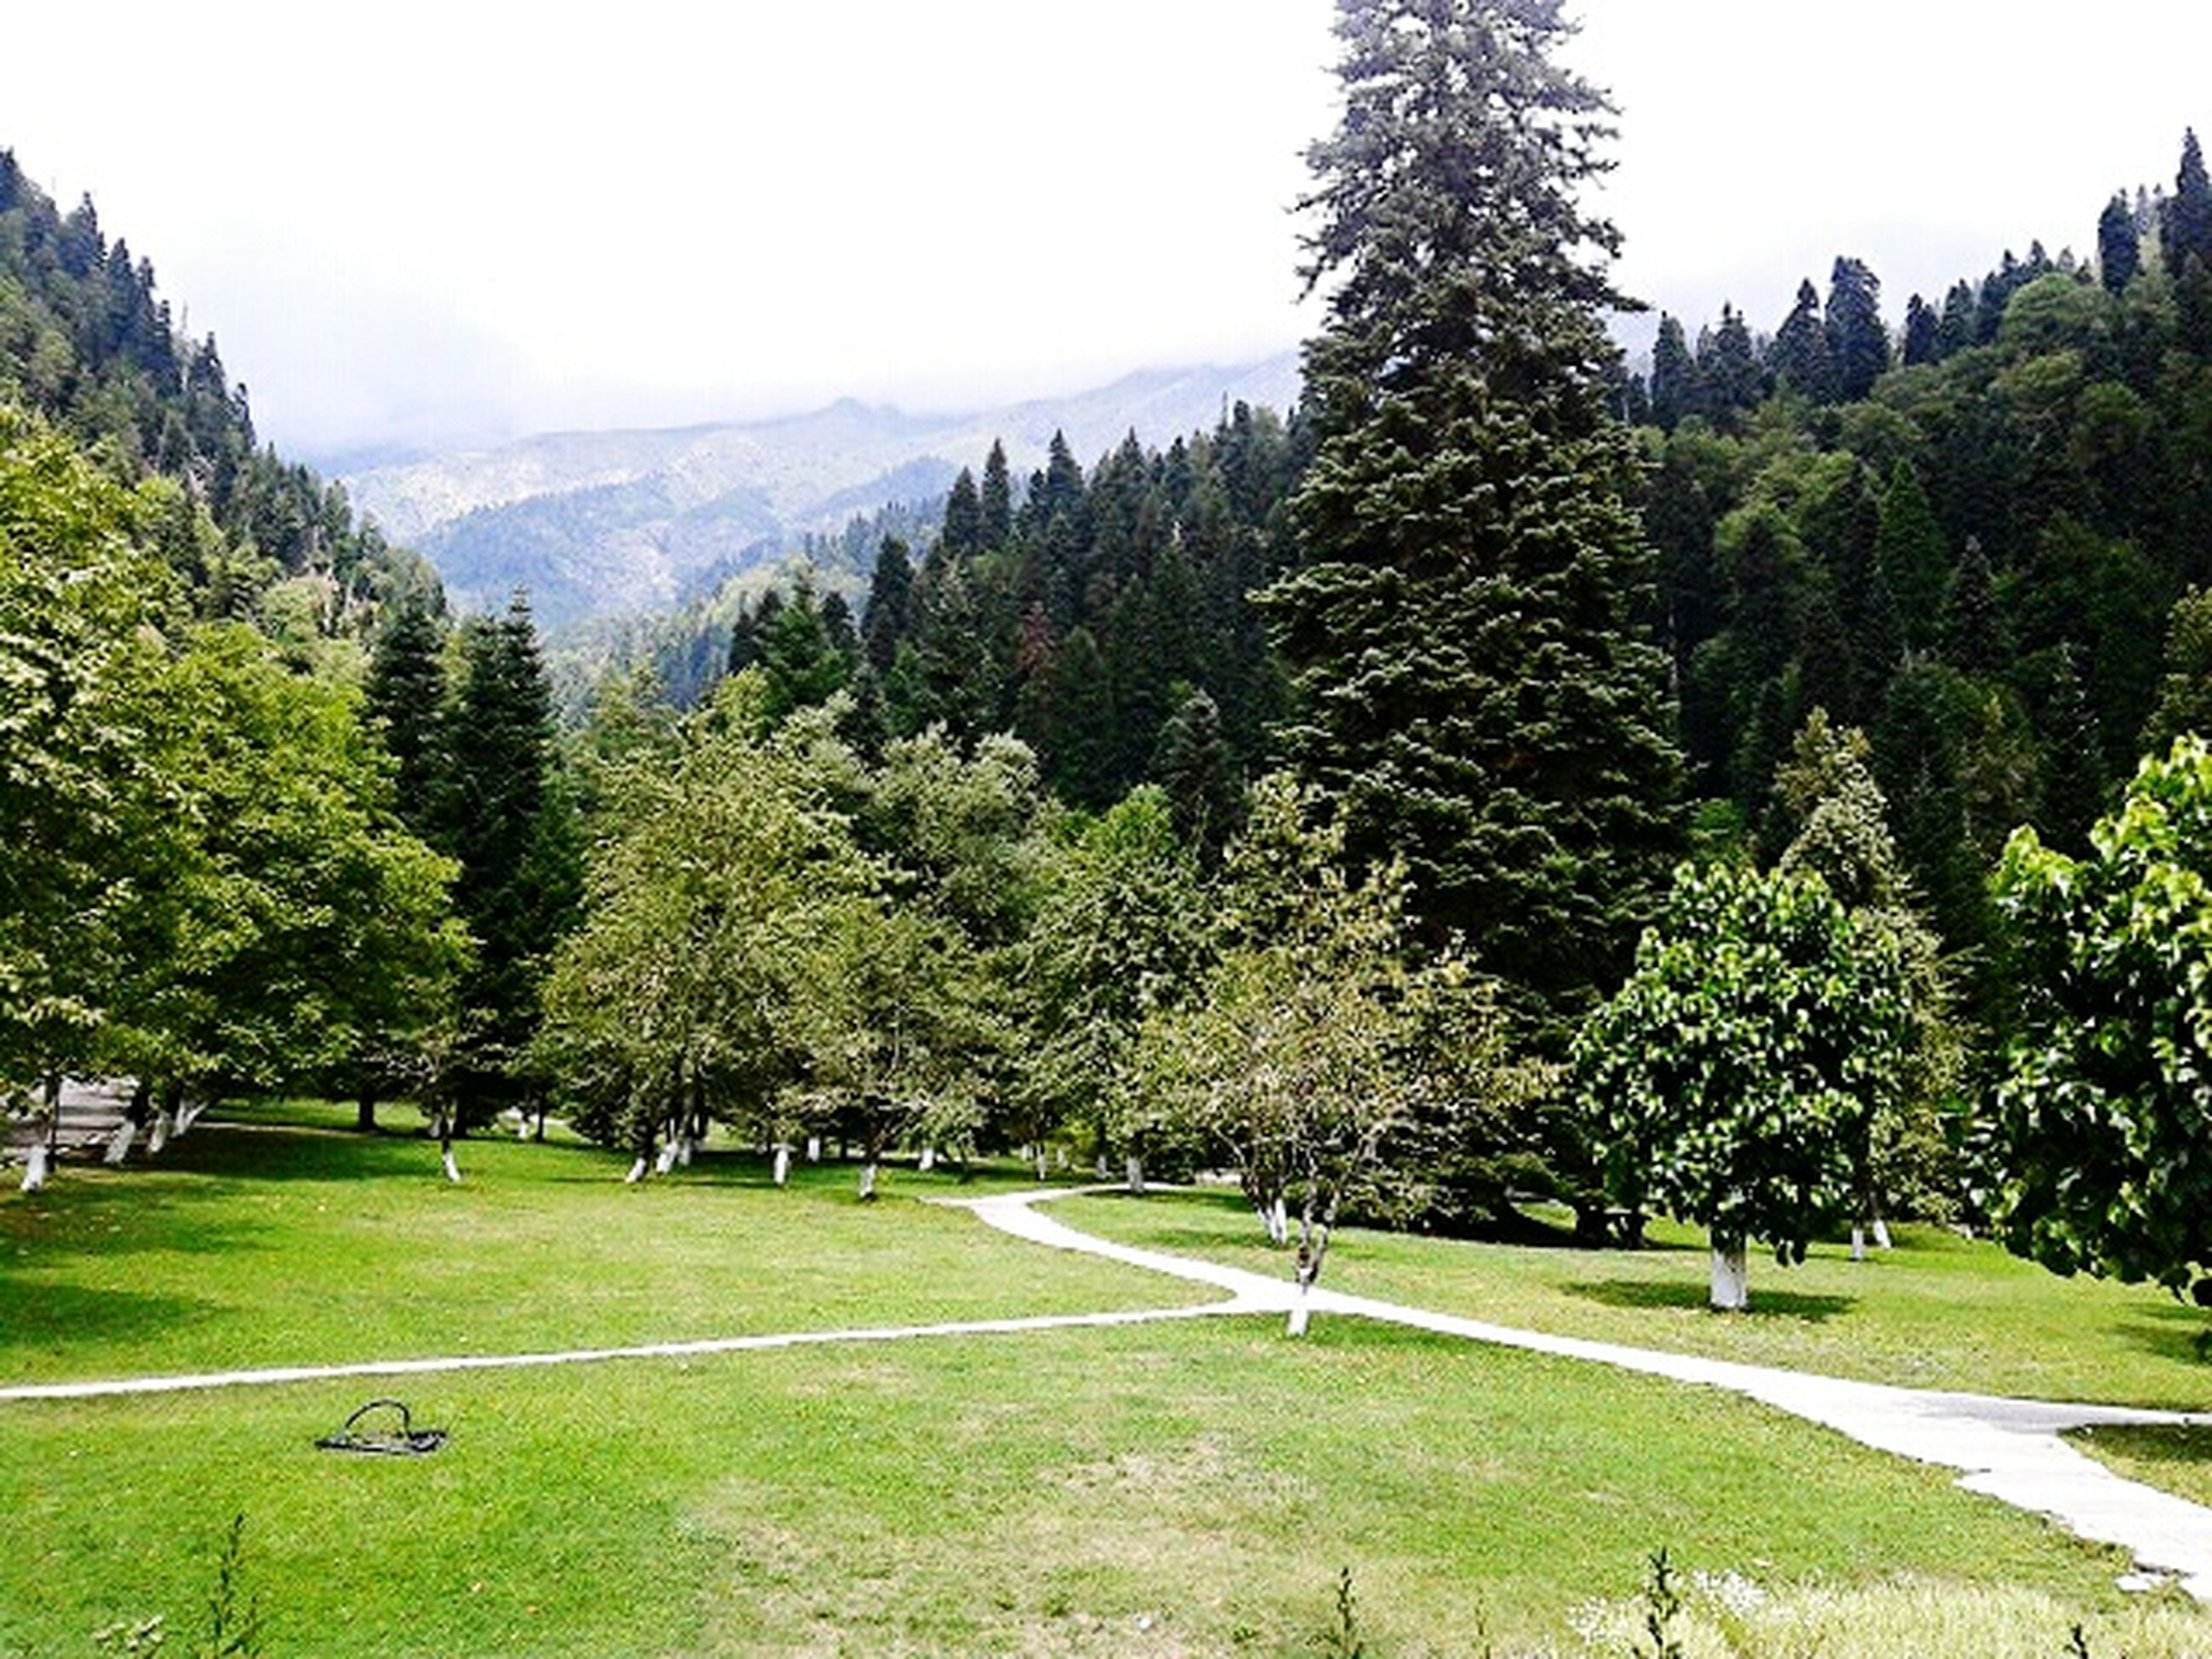 tree, road, tranquil scene, tranquility, transportation, mountain, scenics, empty, beauty in nature, travel destinations, green color, nature, day, non-urban scene, green, outdoors, tourism, solitude, growth, country road, mountain range, countryside, park, lush foliage, remote, curve, winding road, majestic, vacations, sky